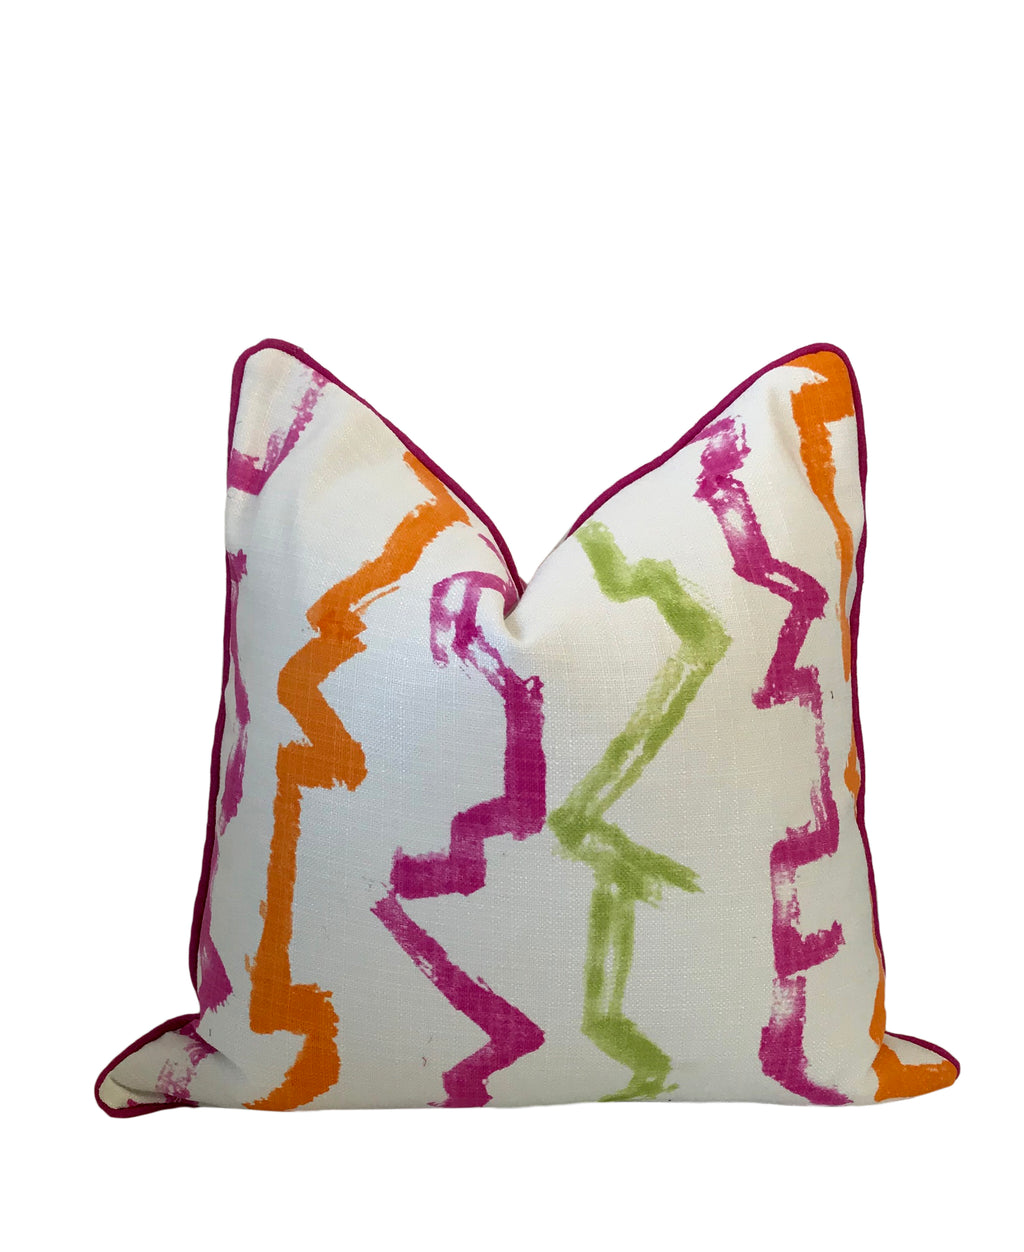 pink and orange stripe pillow. offered by Lilly and Co Palm Beach